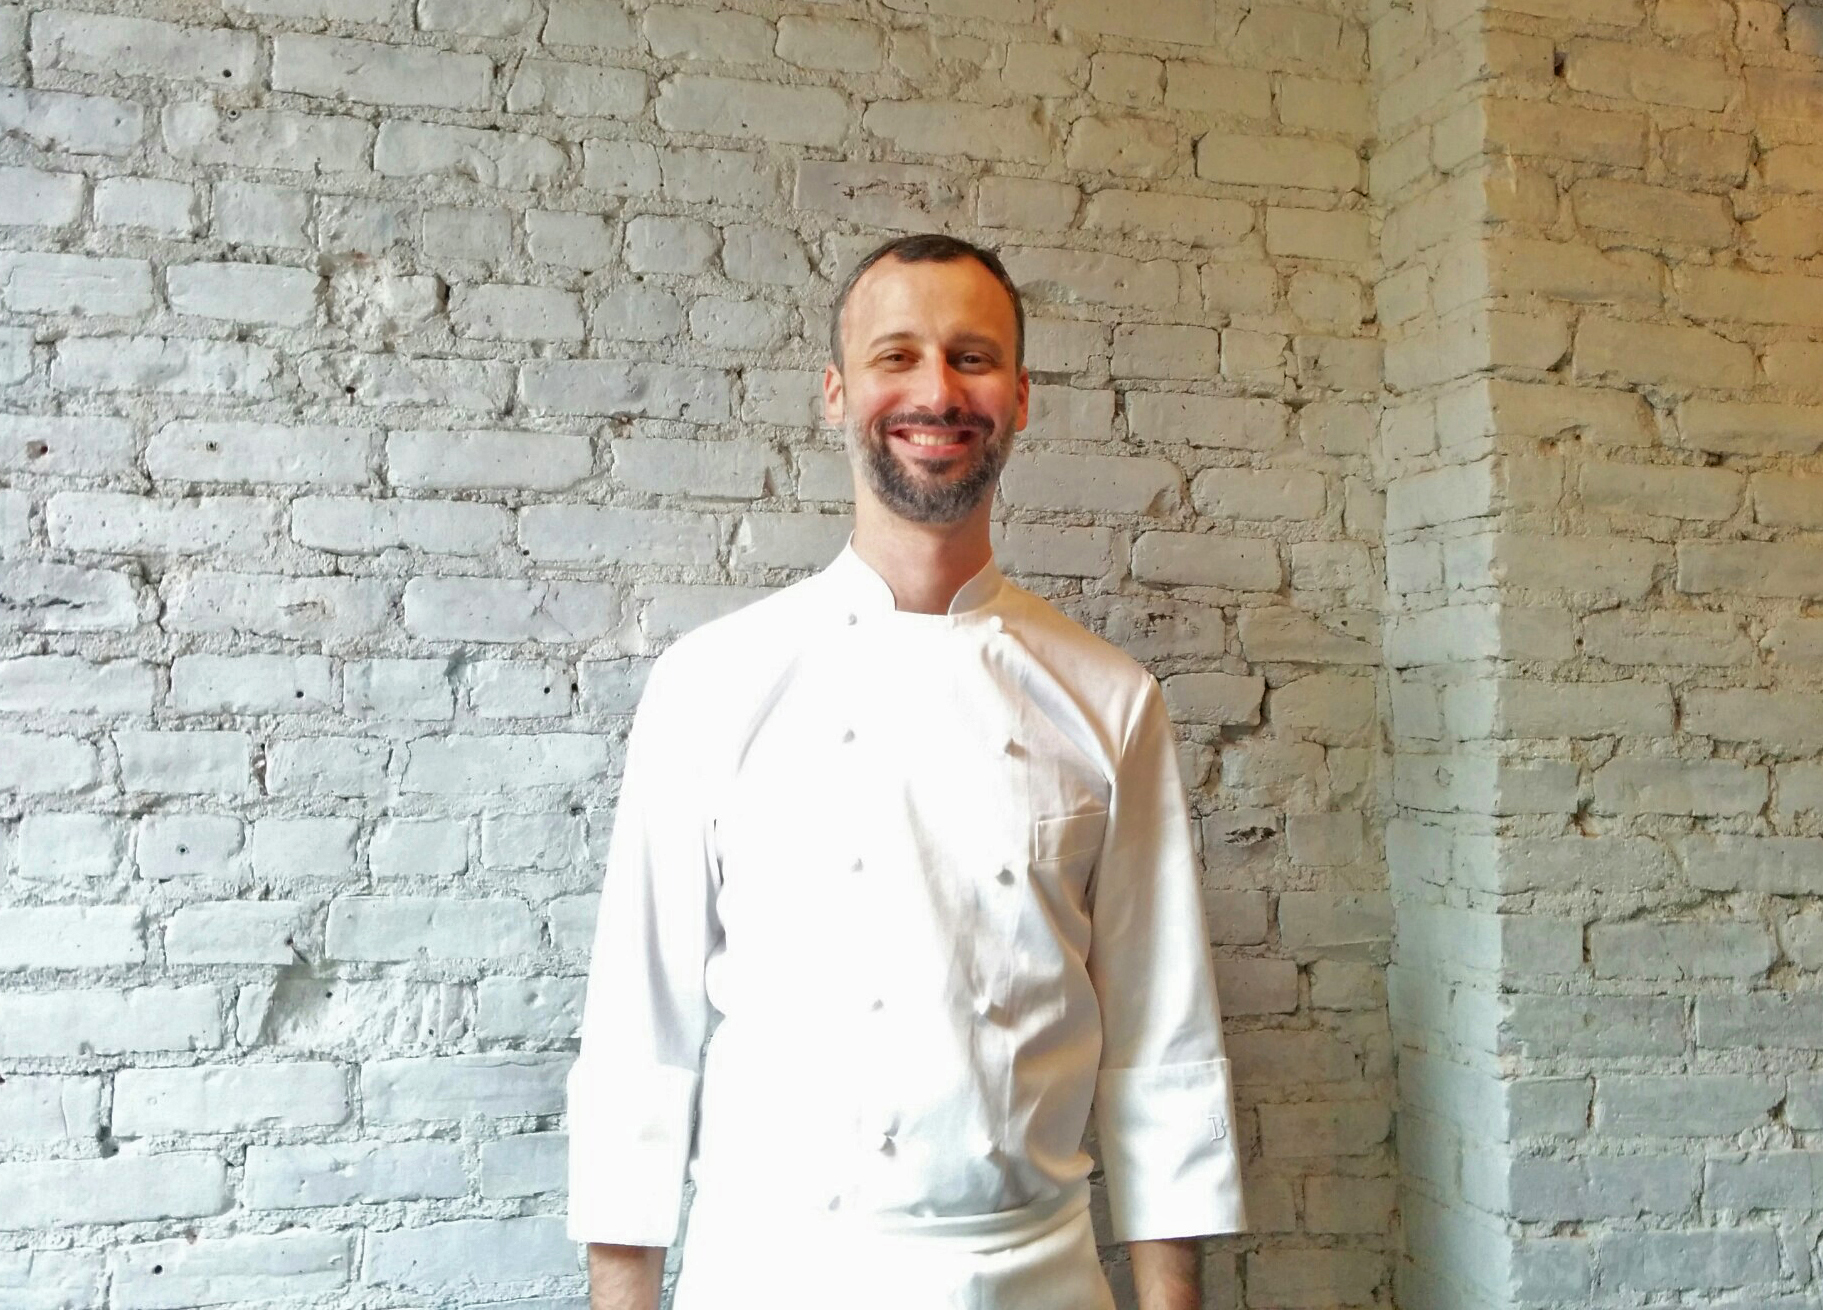 The Continuing Education of Chef Chris Jaeckle